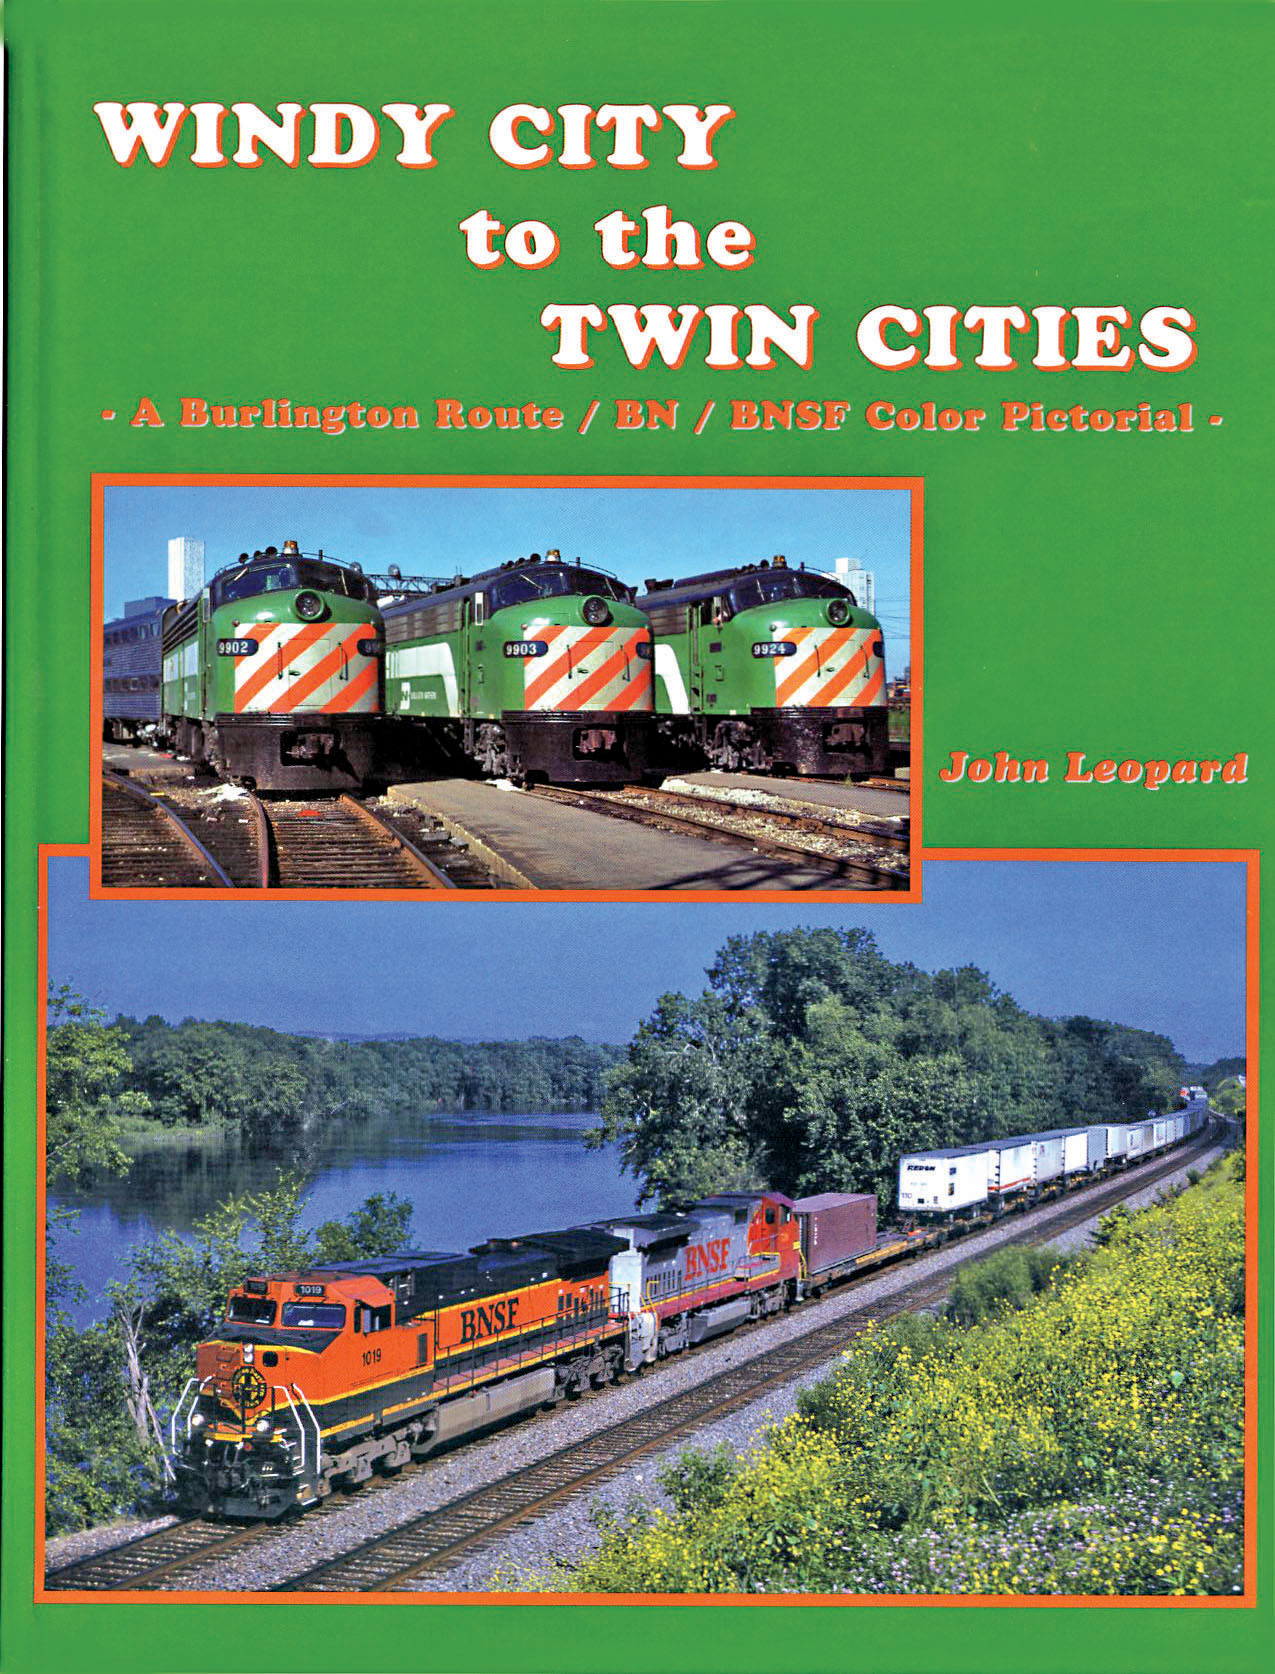 BNSF Windy City to the Twon Cities